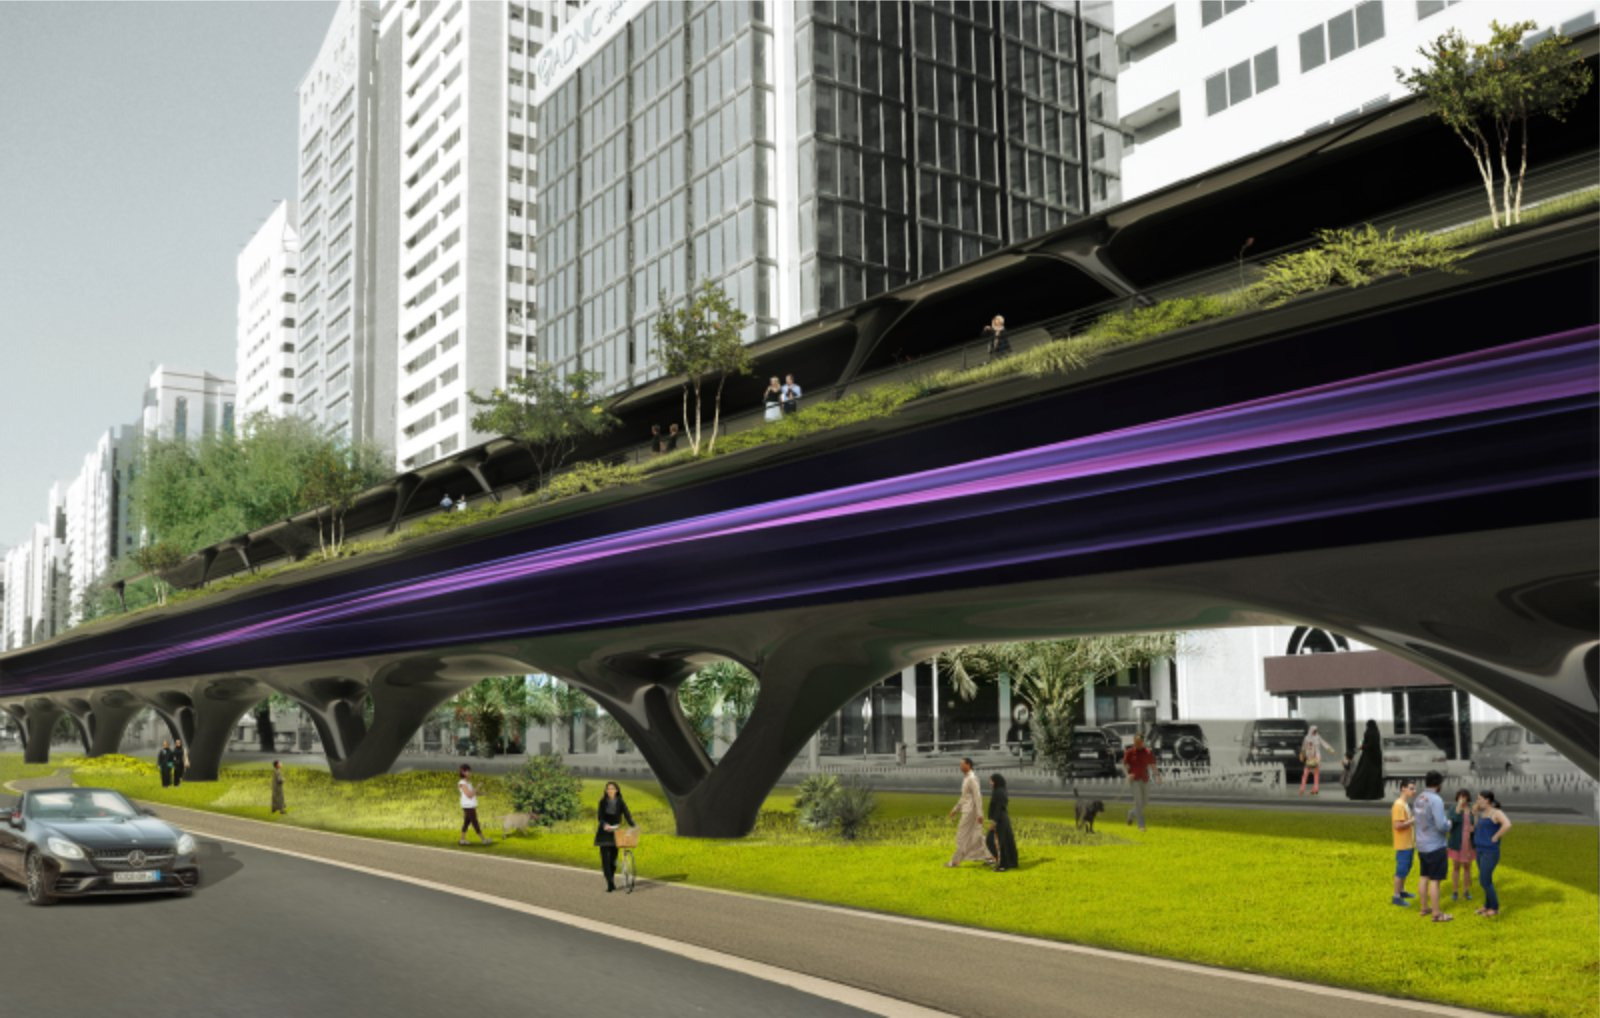 Chinese MAD partners with HyperloopTT on sustainable transportation infrastructure